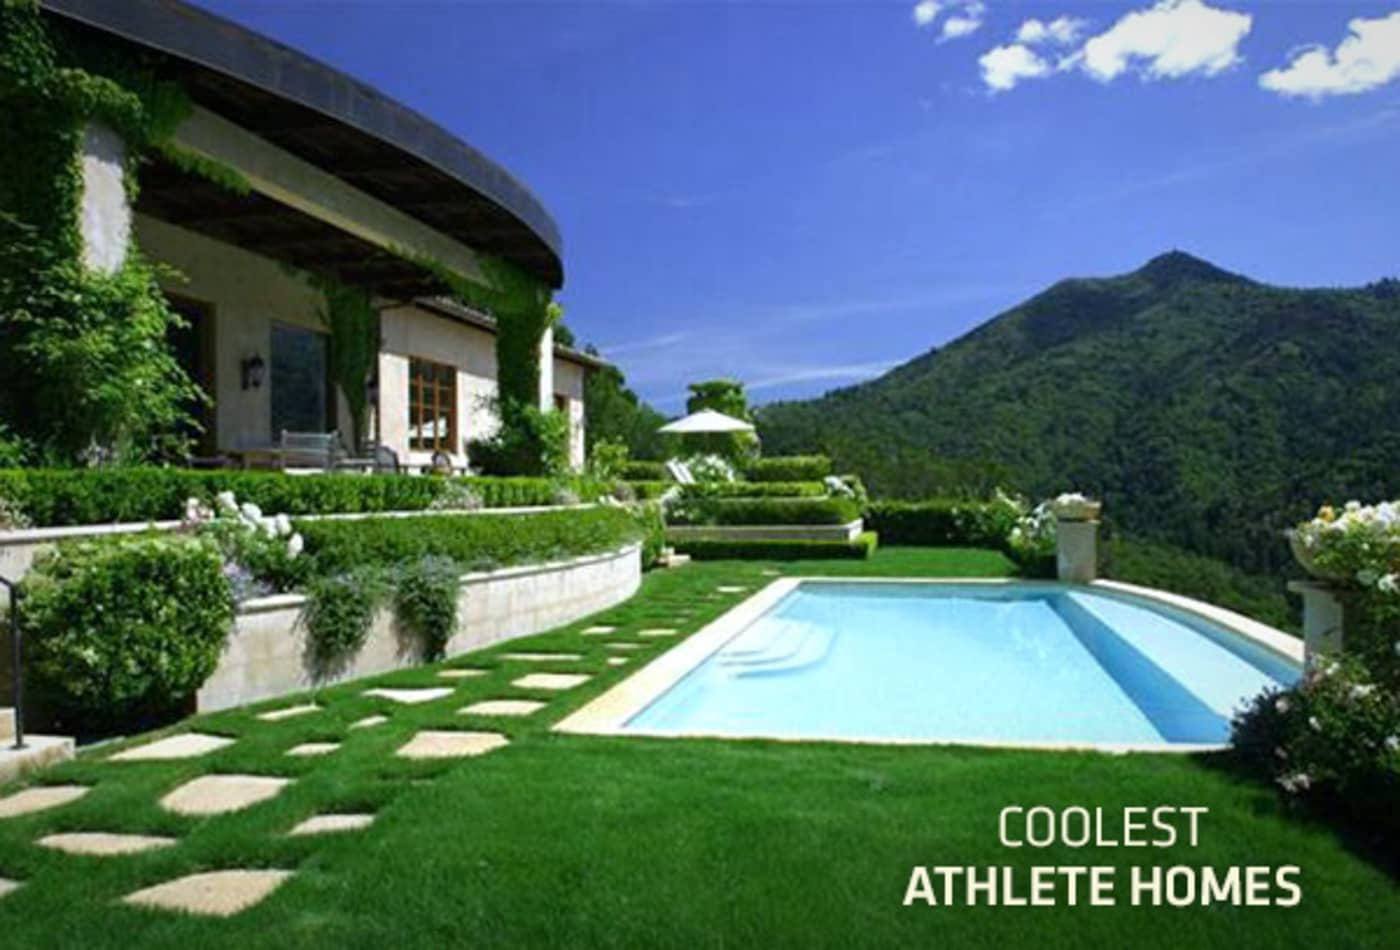 Cover-Barry-Zito-Coolest-Athlete-Homes.jpg